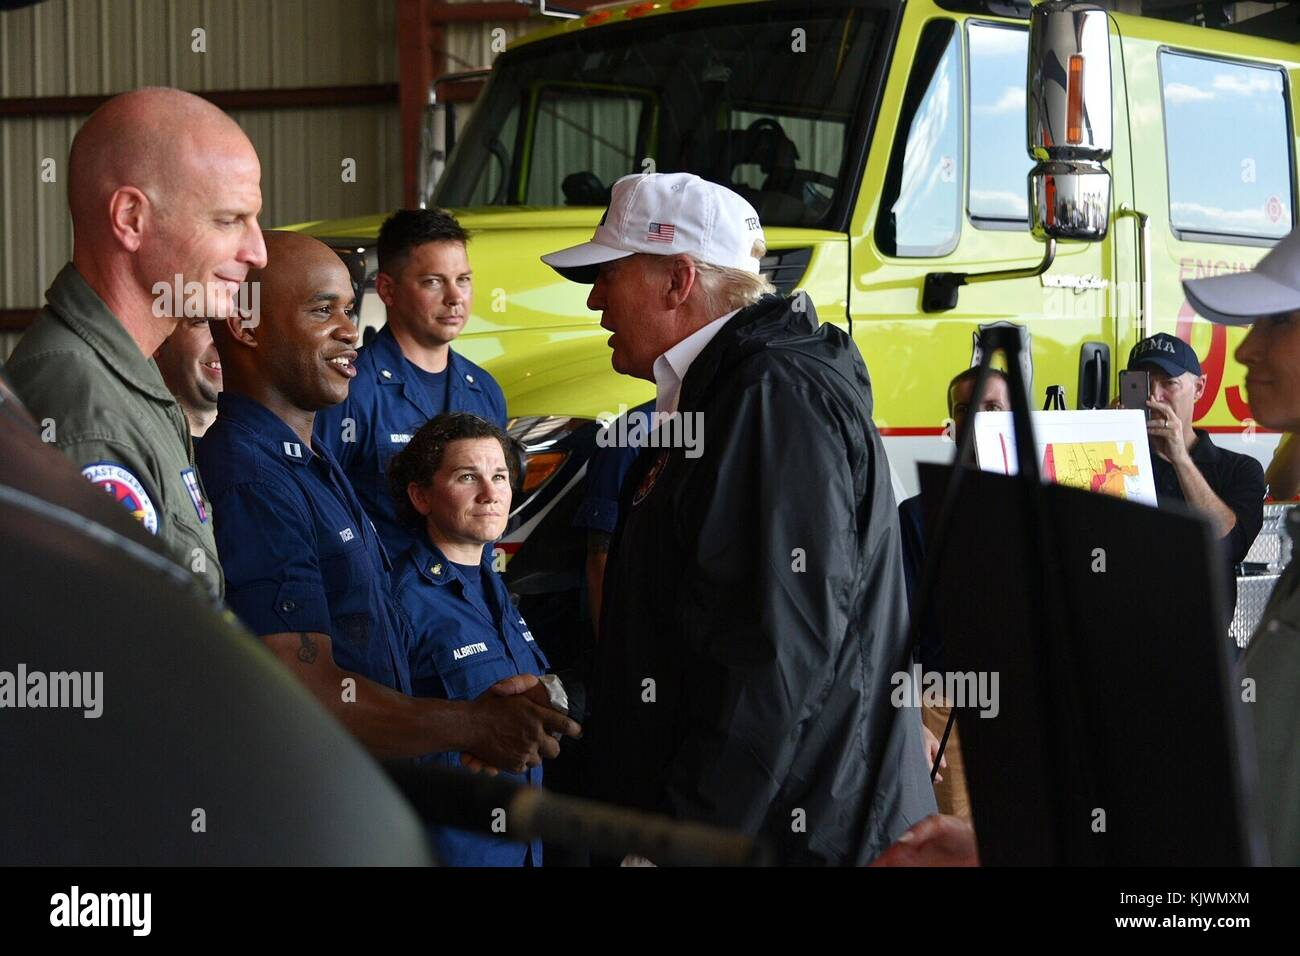 U.S. President Donald Trump meets with U.S. Coast Guard officers after Hurricane Irma September 14, 2017 in Ft. - Stock Image